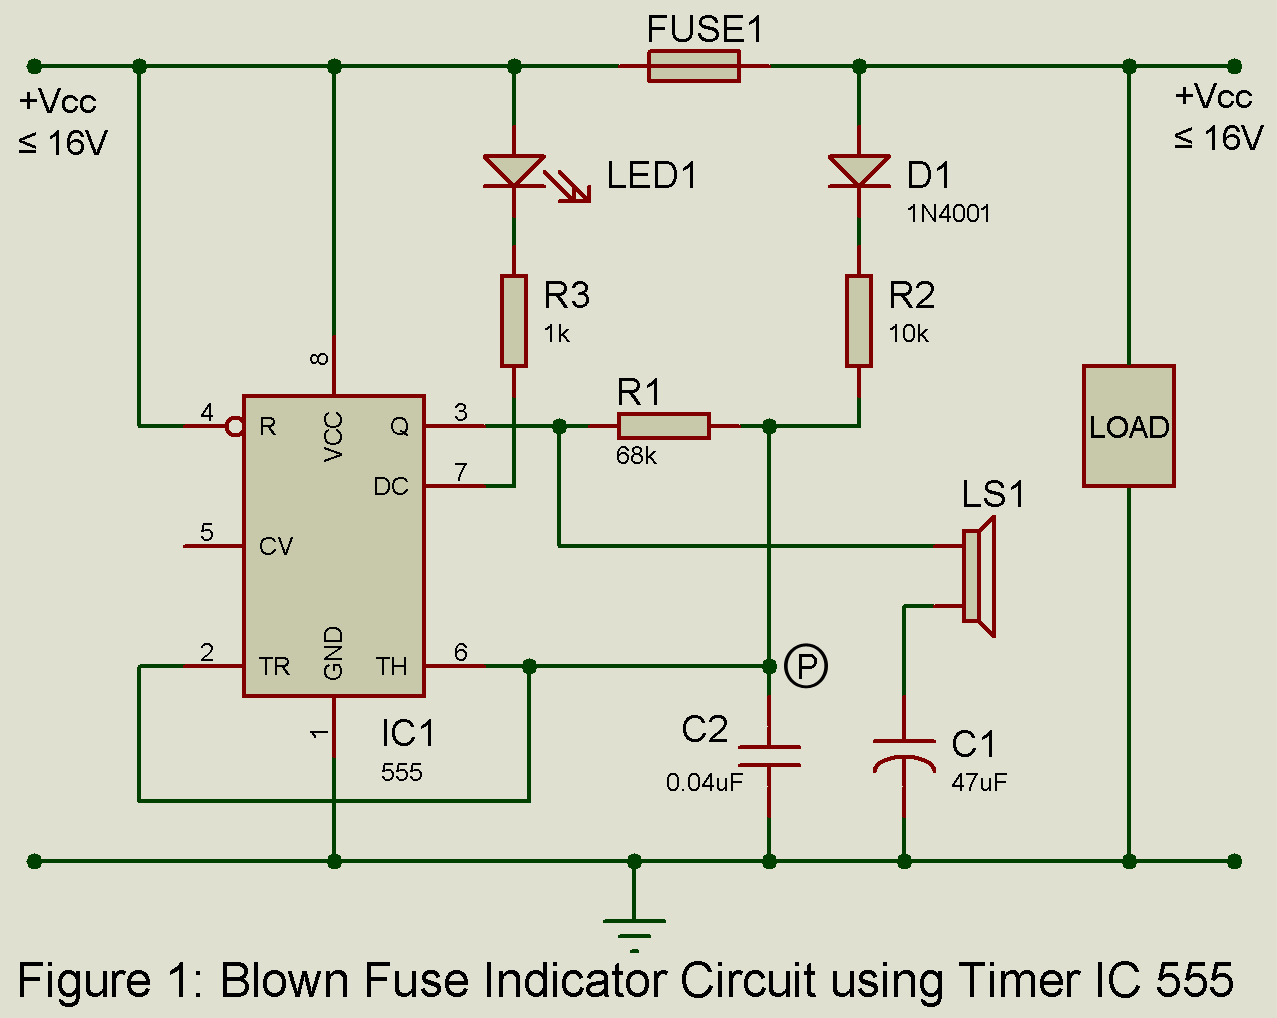 hight resolution of blown fuse indicator circuit engineering projects blownfuse indicator circuit diagram tradeoficcom